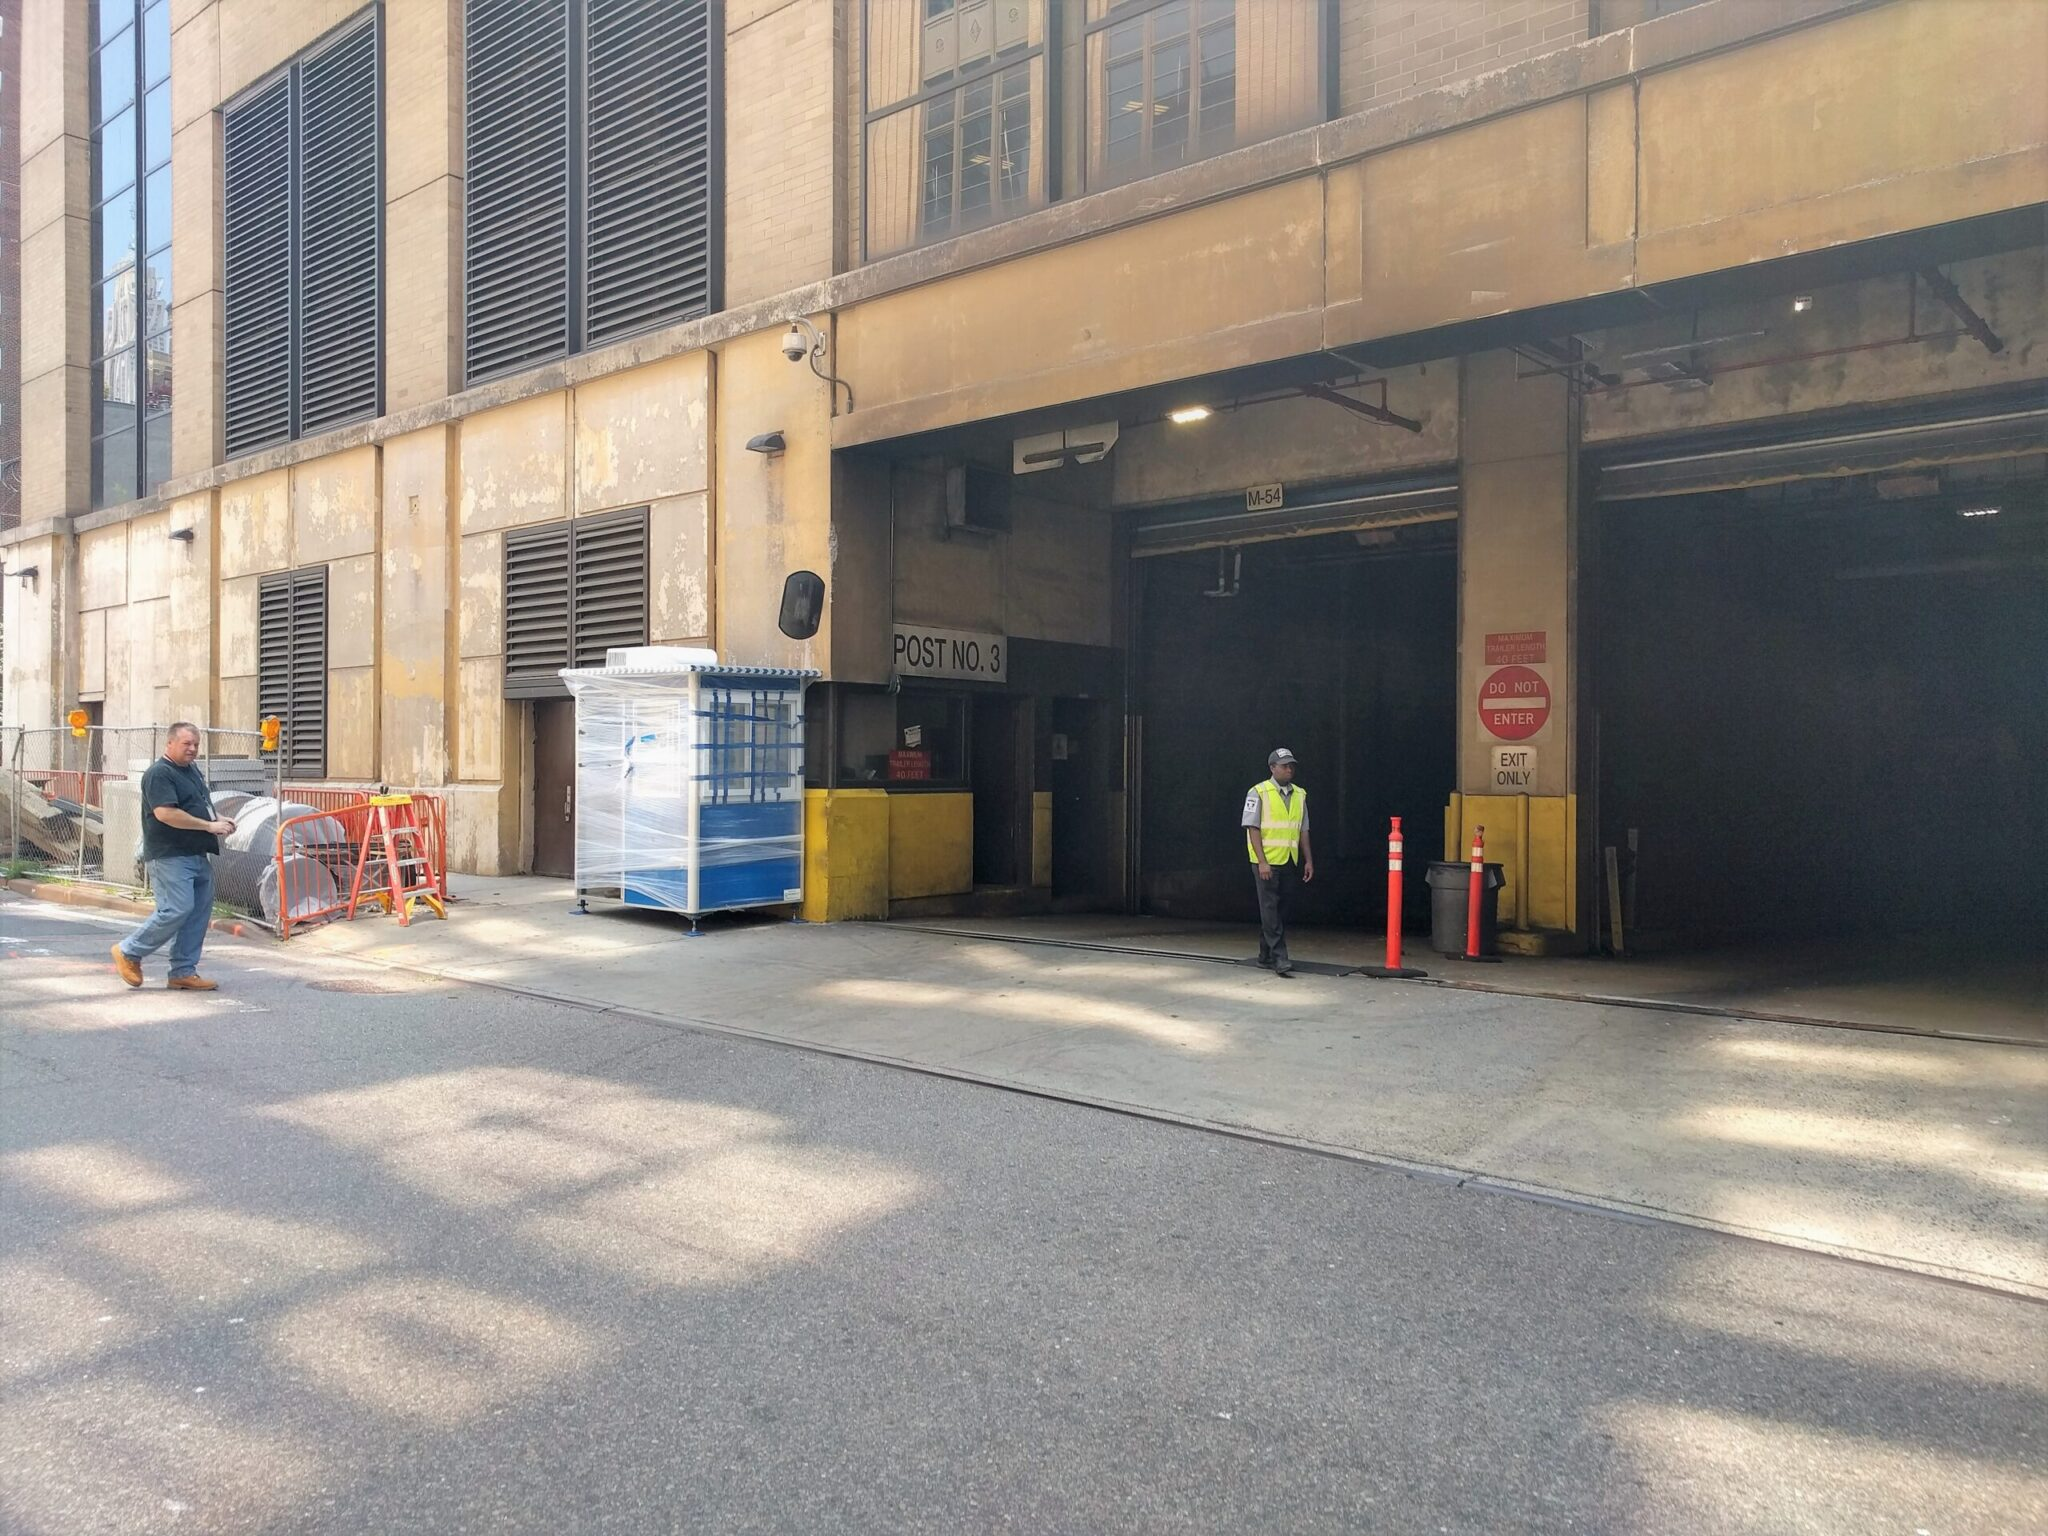 4x6 Front Entrance Booth Delivered in Manhattan, NY outside USPS with HVAC System, Anchoring Brackets, and Sliding Windows